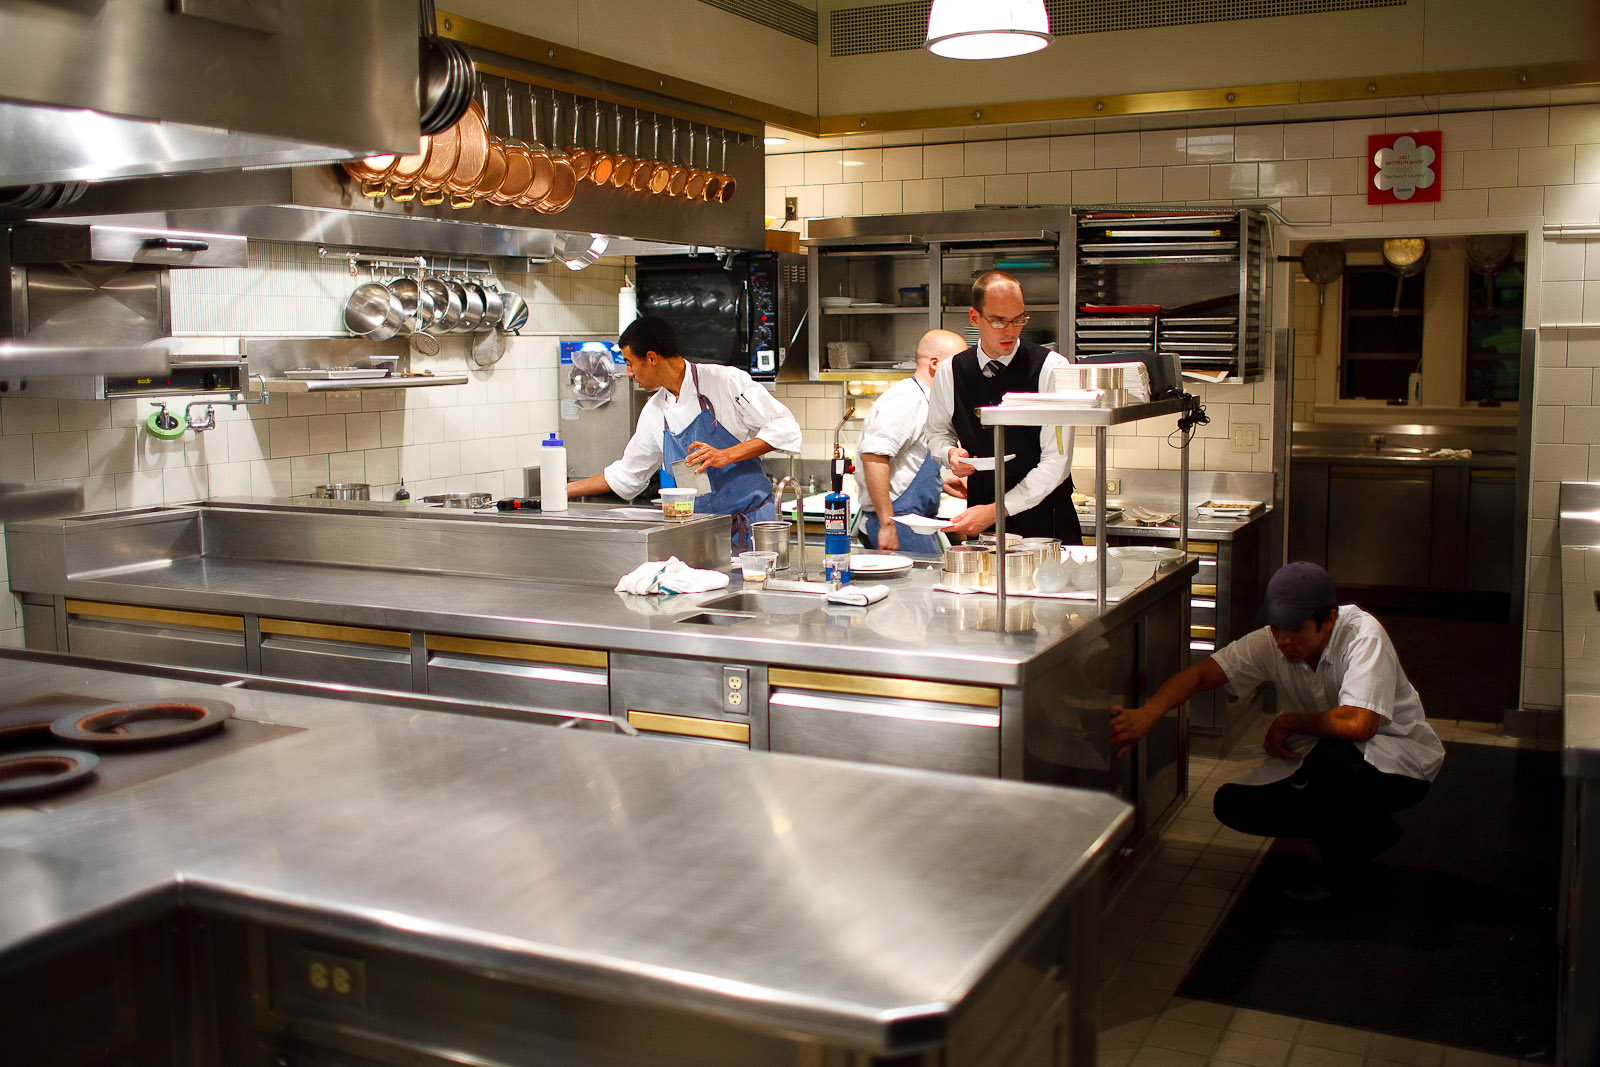 The-French-Laundry-Yountville-California-Inside-the-kitchen-of-The-French-Laundry-after-hours.jpg